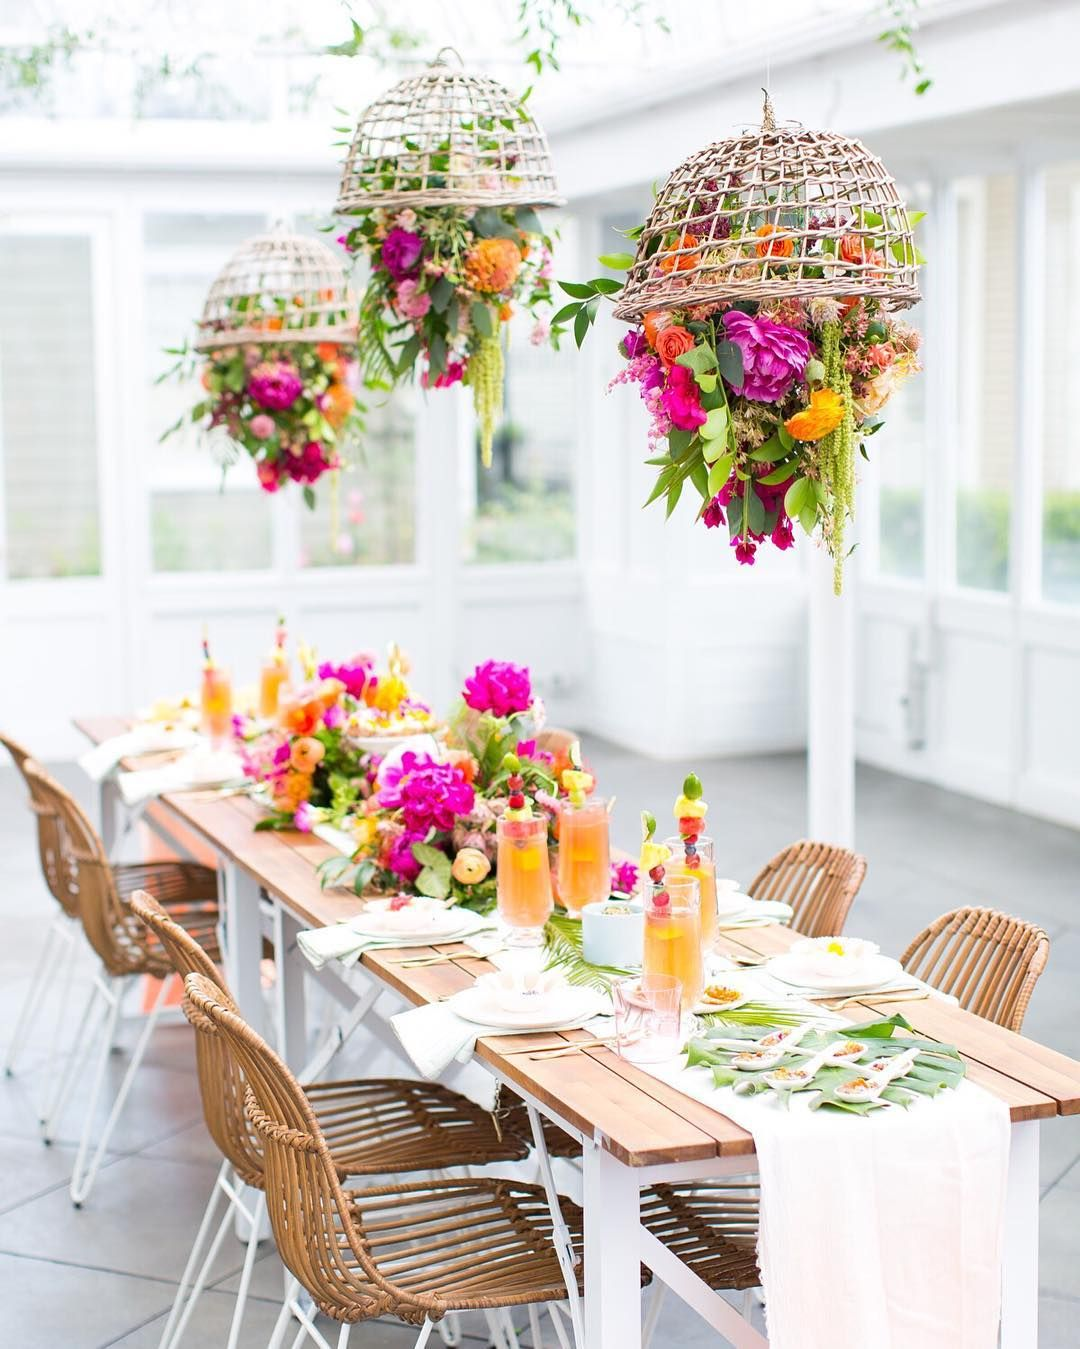 Summer Outdoor Wedding Decorations Ideas 12: Tropical Tablescape (With Images)